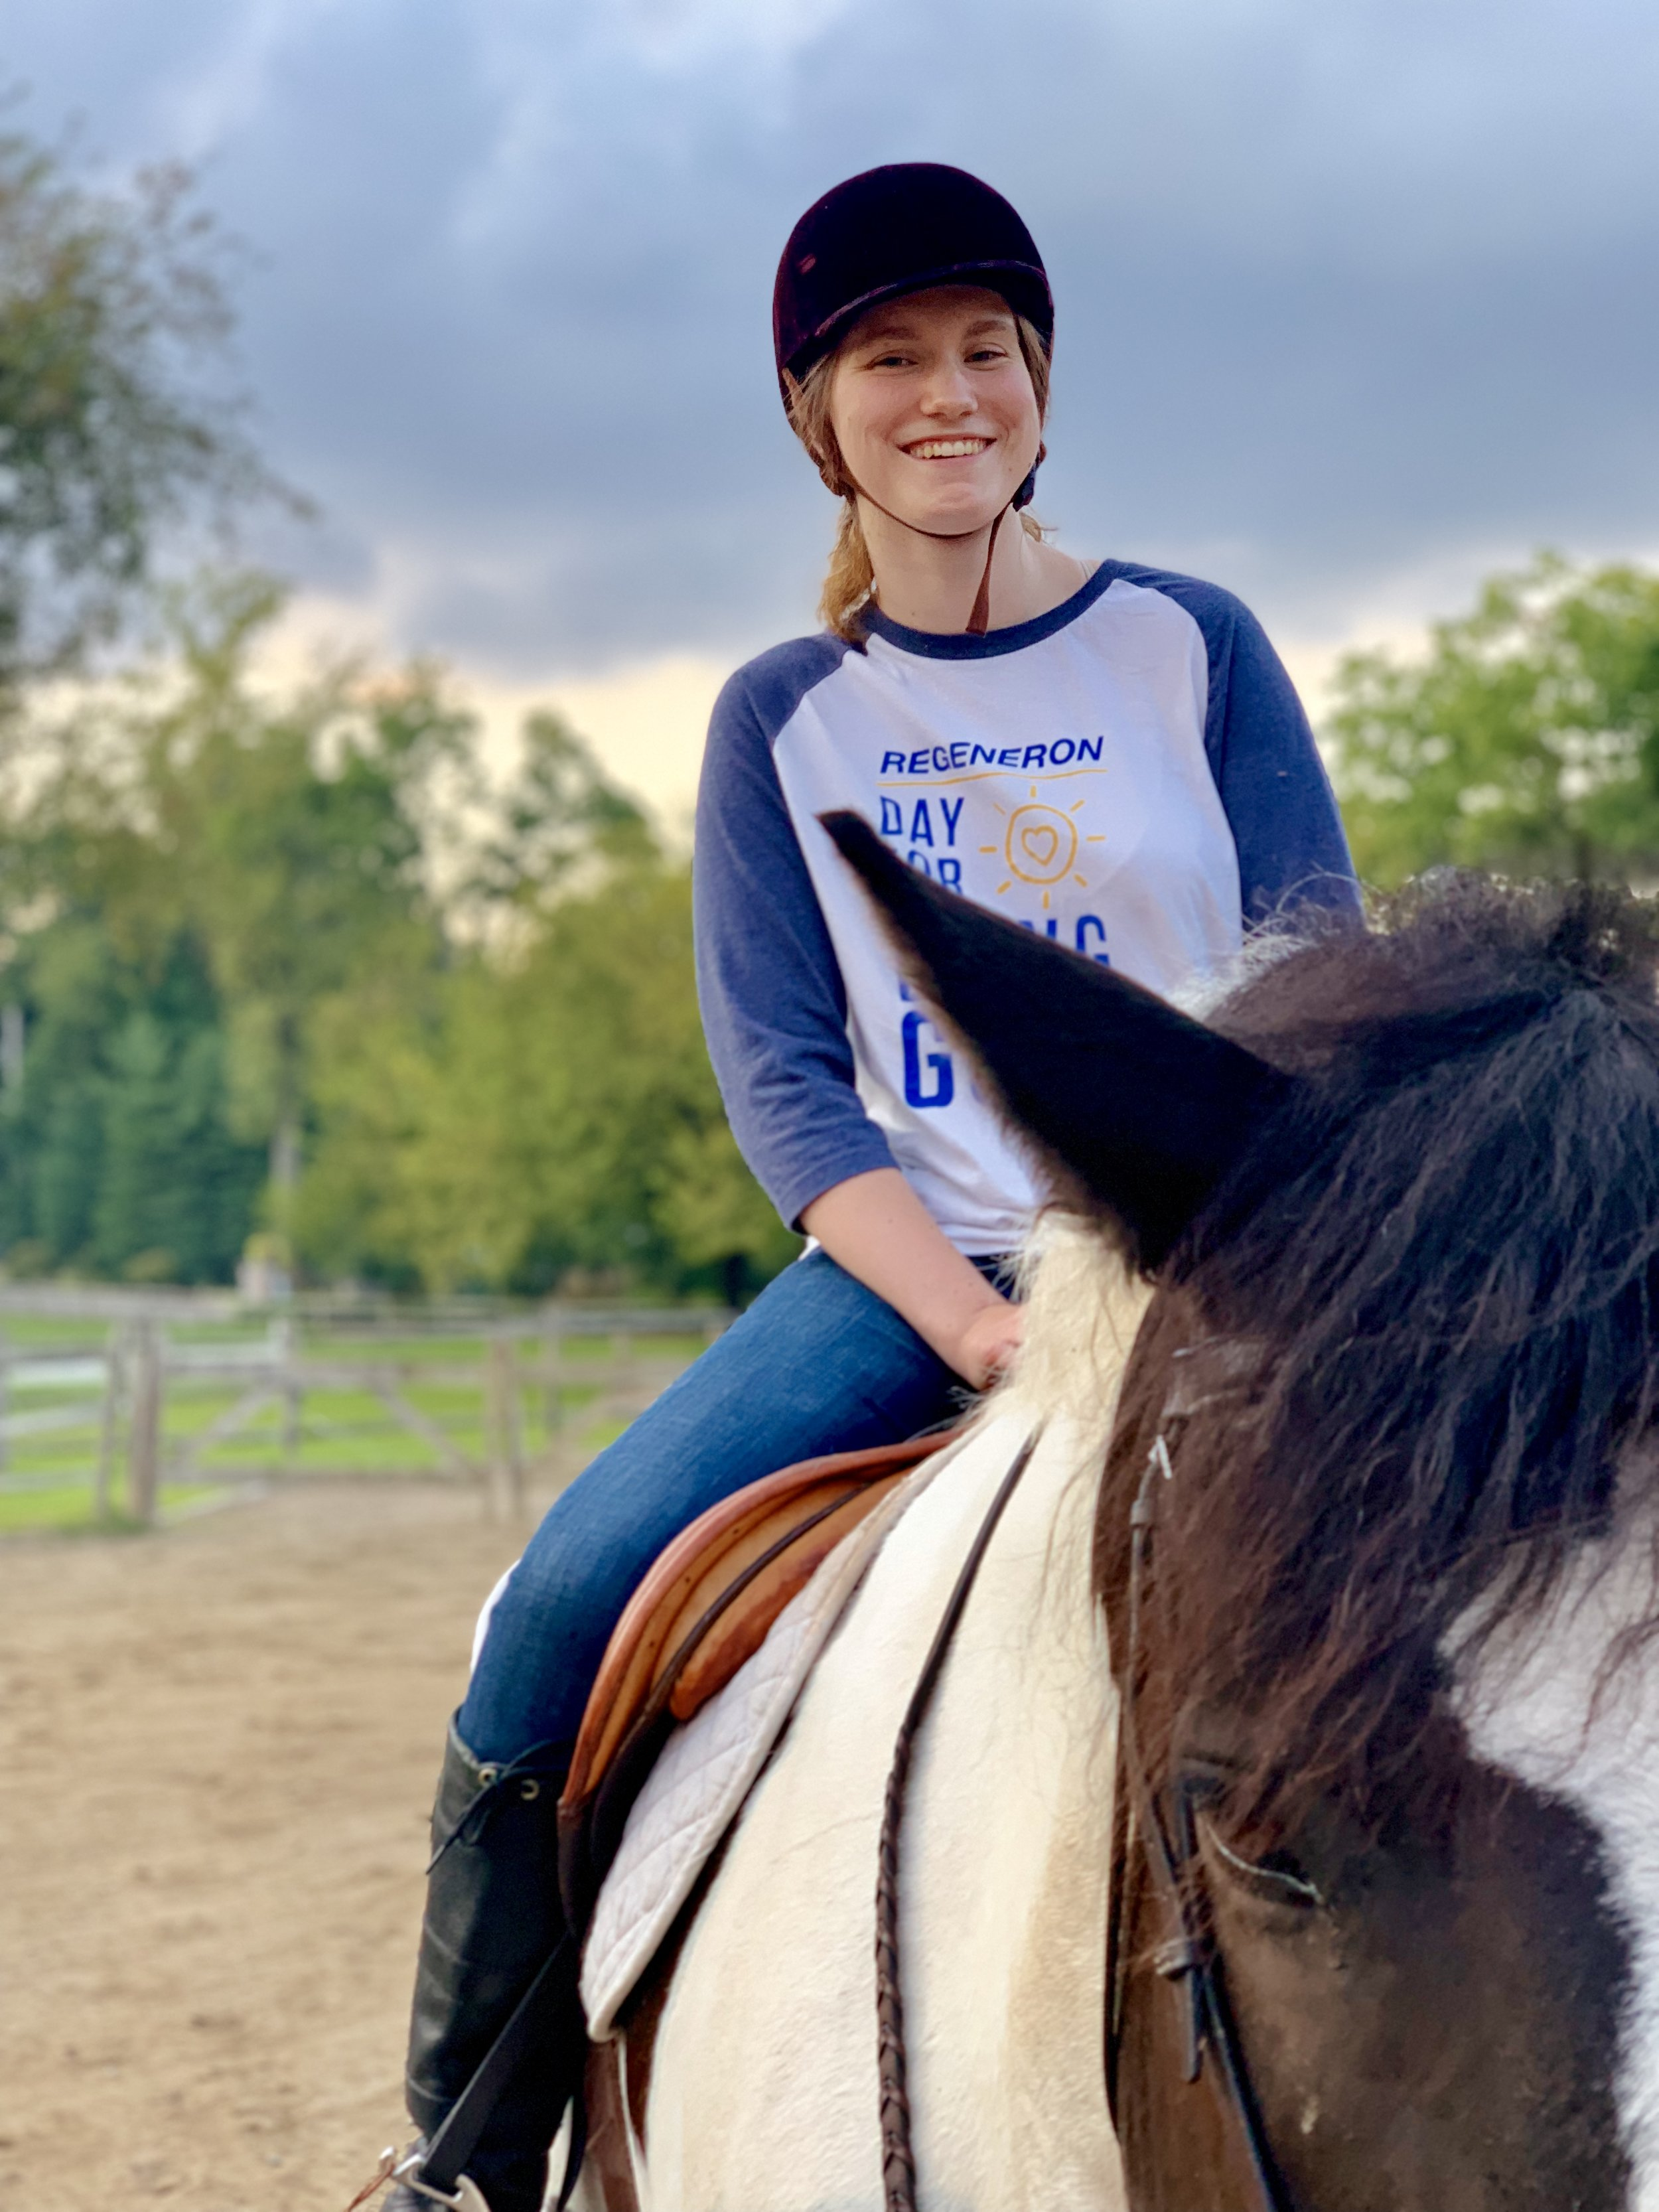 Meet your team! - My name is Catherine and I work on the BST pipeline in the Protein Expression Sciences department at Regeneron. This was the first time I've been on a horse since a middle school field trip and I was a little nervous. Both the trainers and the horses made me feel super comfortable, and the experience overall was great. I plan to go again and will recommend it to any of my coworkers!